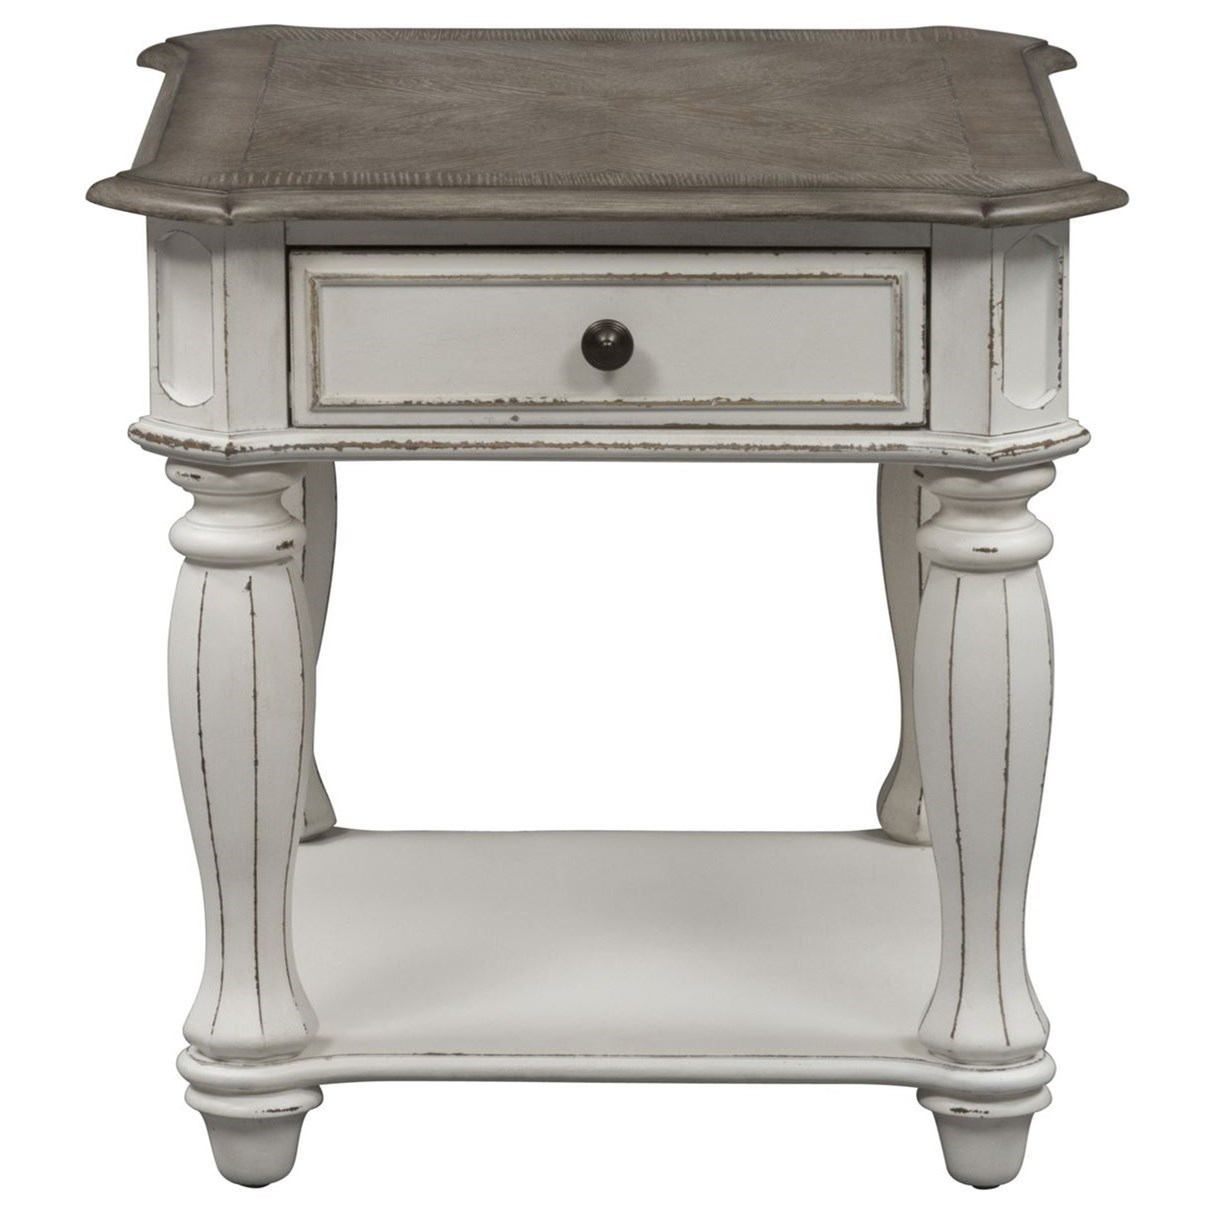 Magnolia Manor End Table with Dovetail Drawer by Liberty Furniture at Darvin Furniture